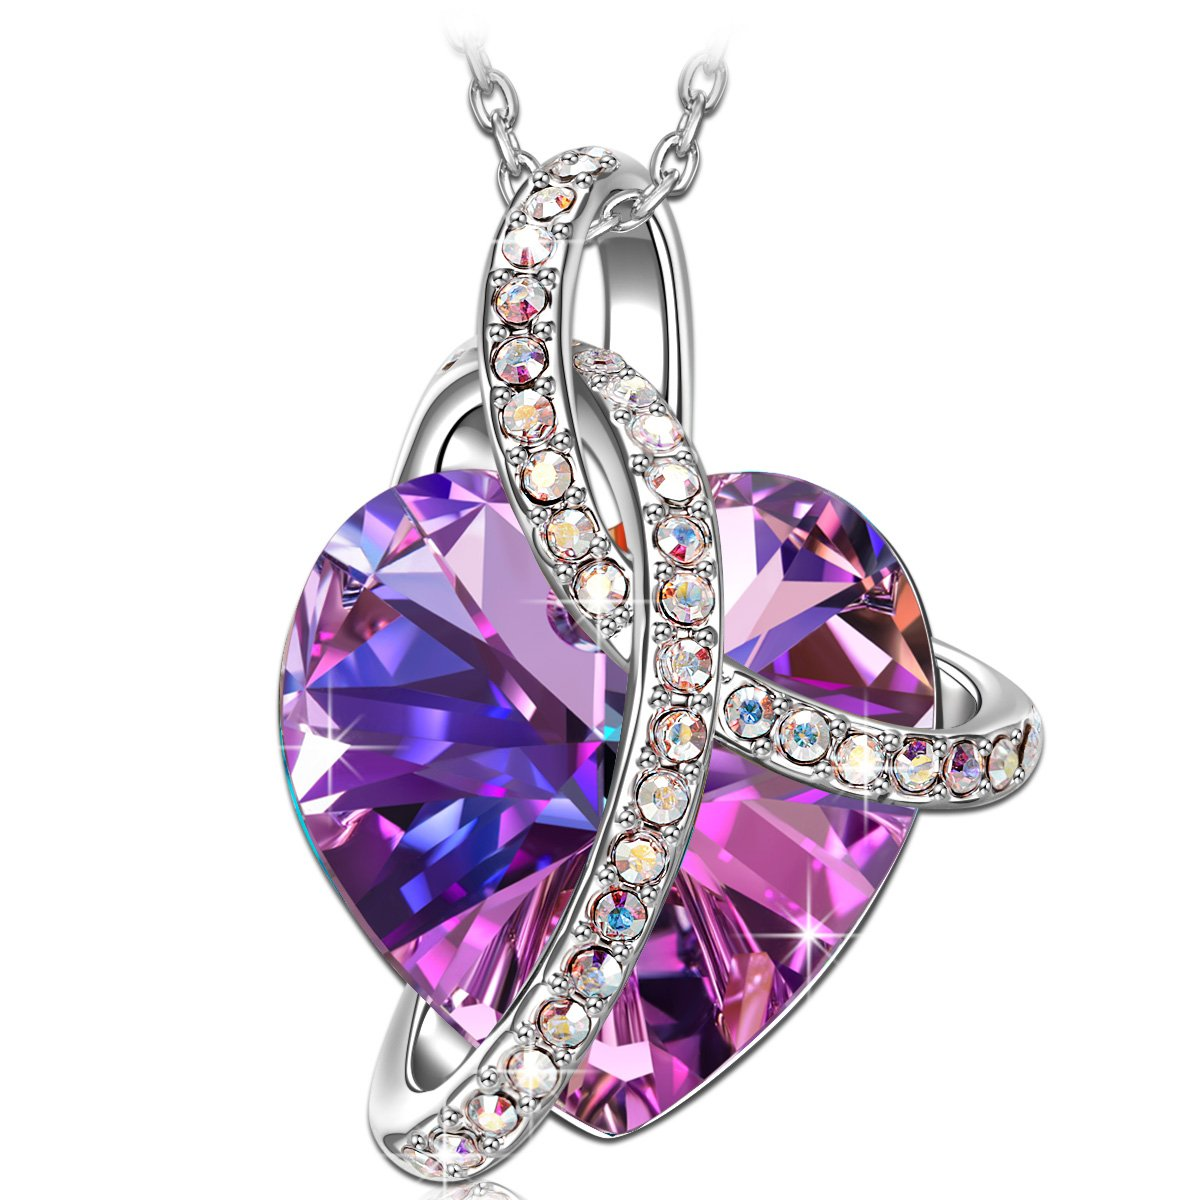 SIVERY Birthday Gifts 'Love Heart' Women Jewelry Necklace Pendant with Swarovski Crystals, Christmas Day Gifts for Mom